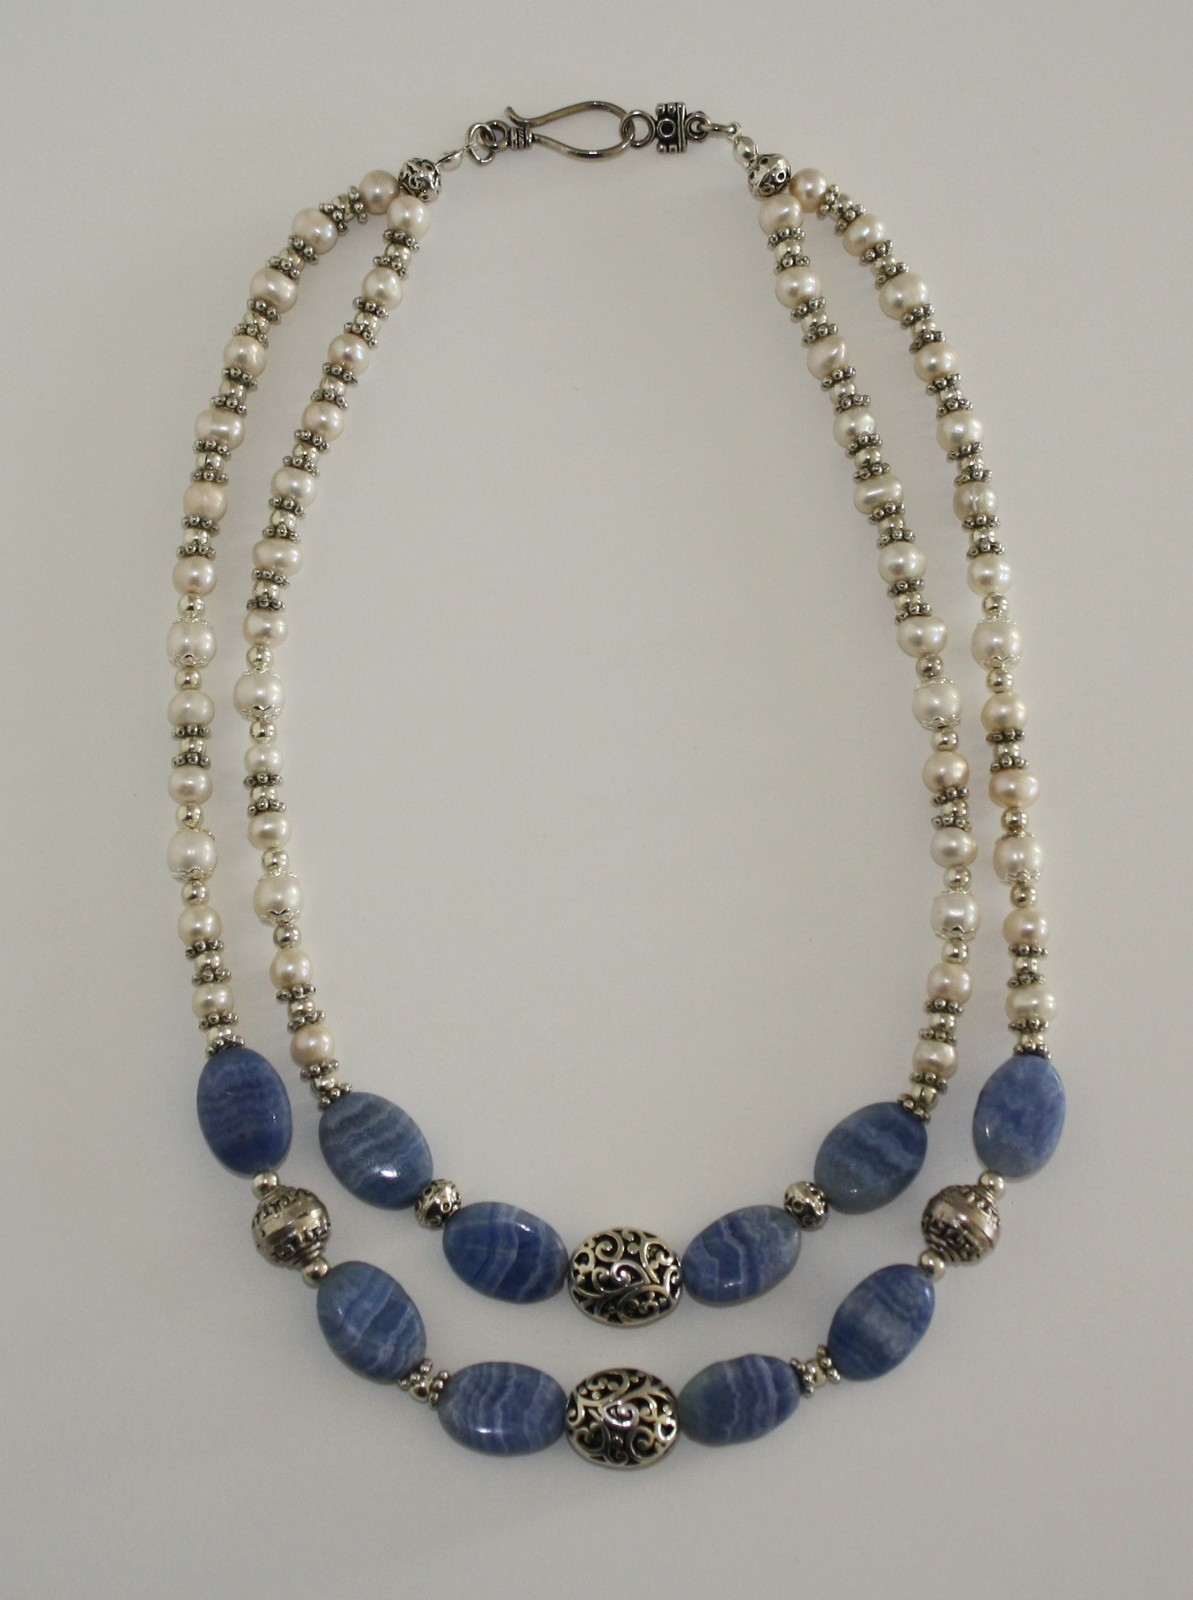 Blue Lace and Freshwater Pearl Necklace and Earrings Set